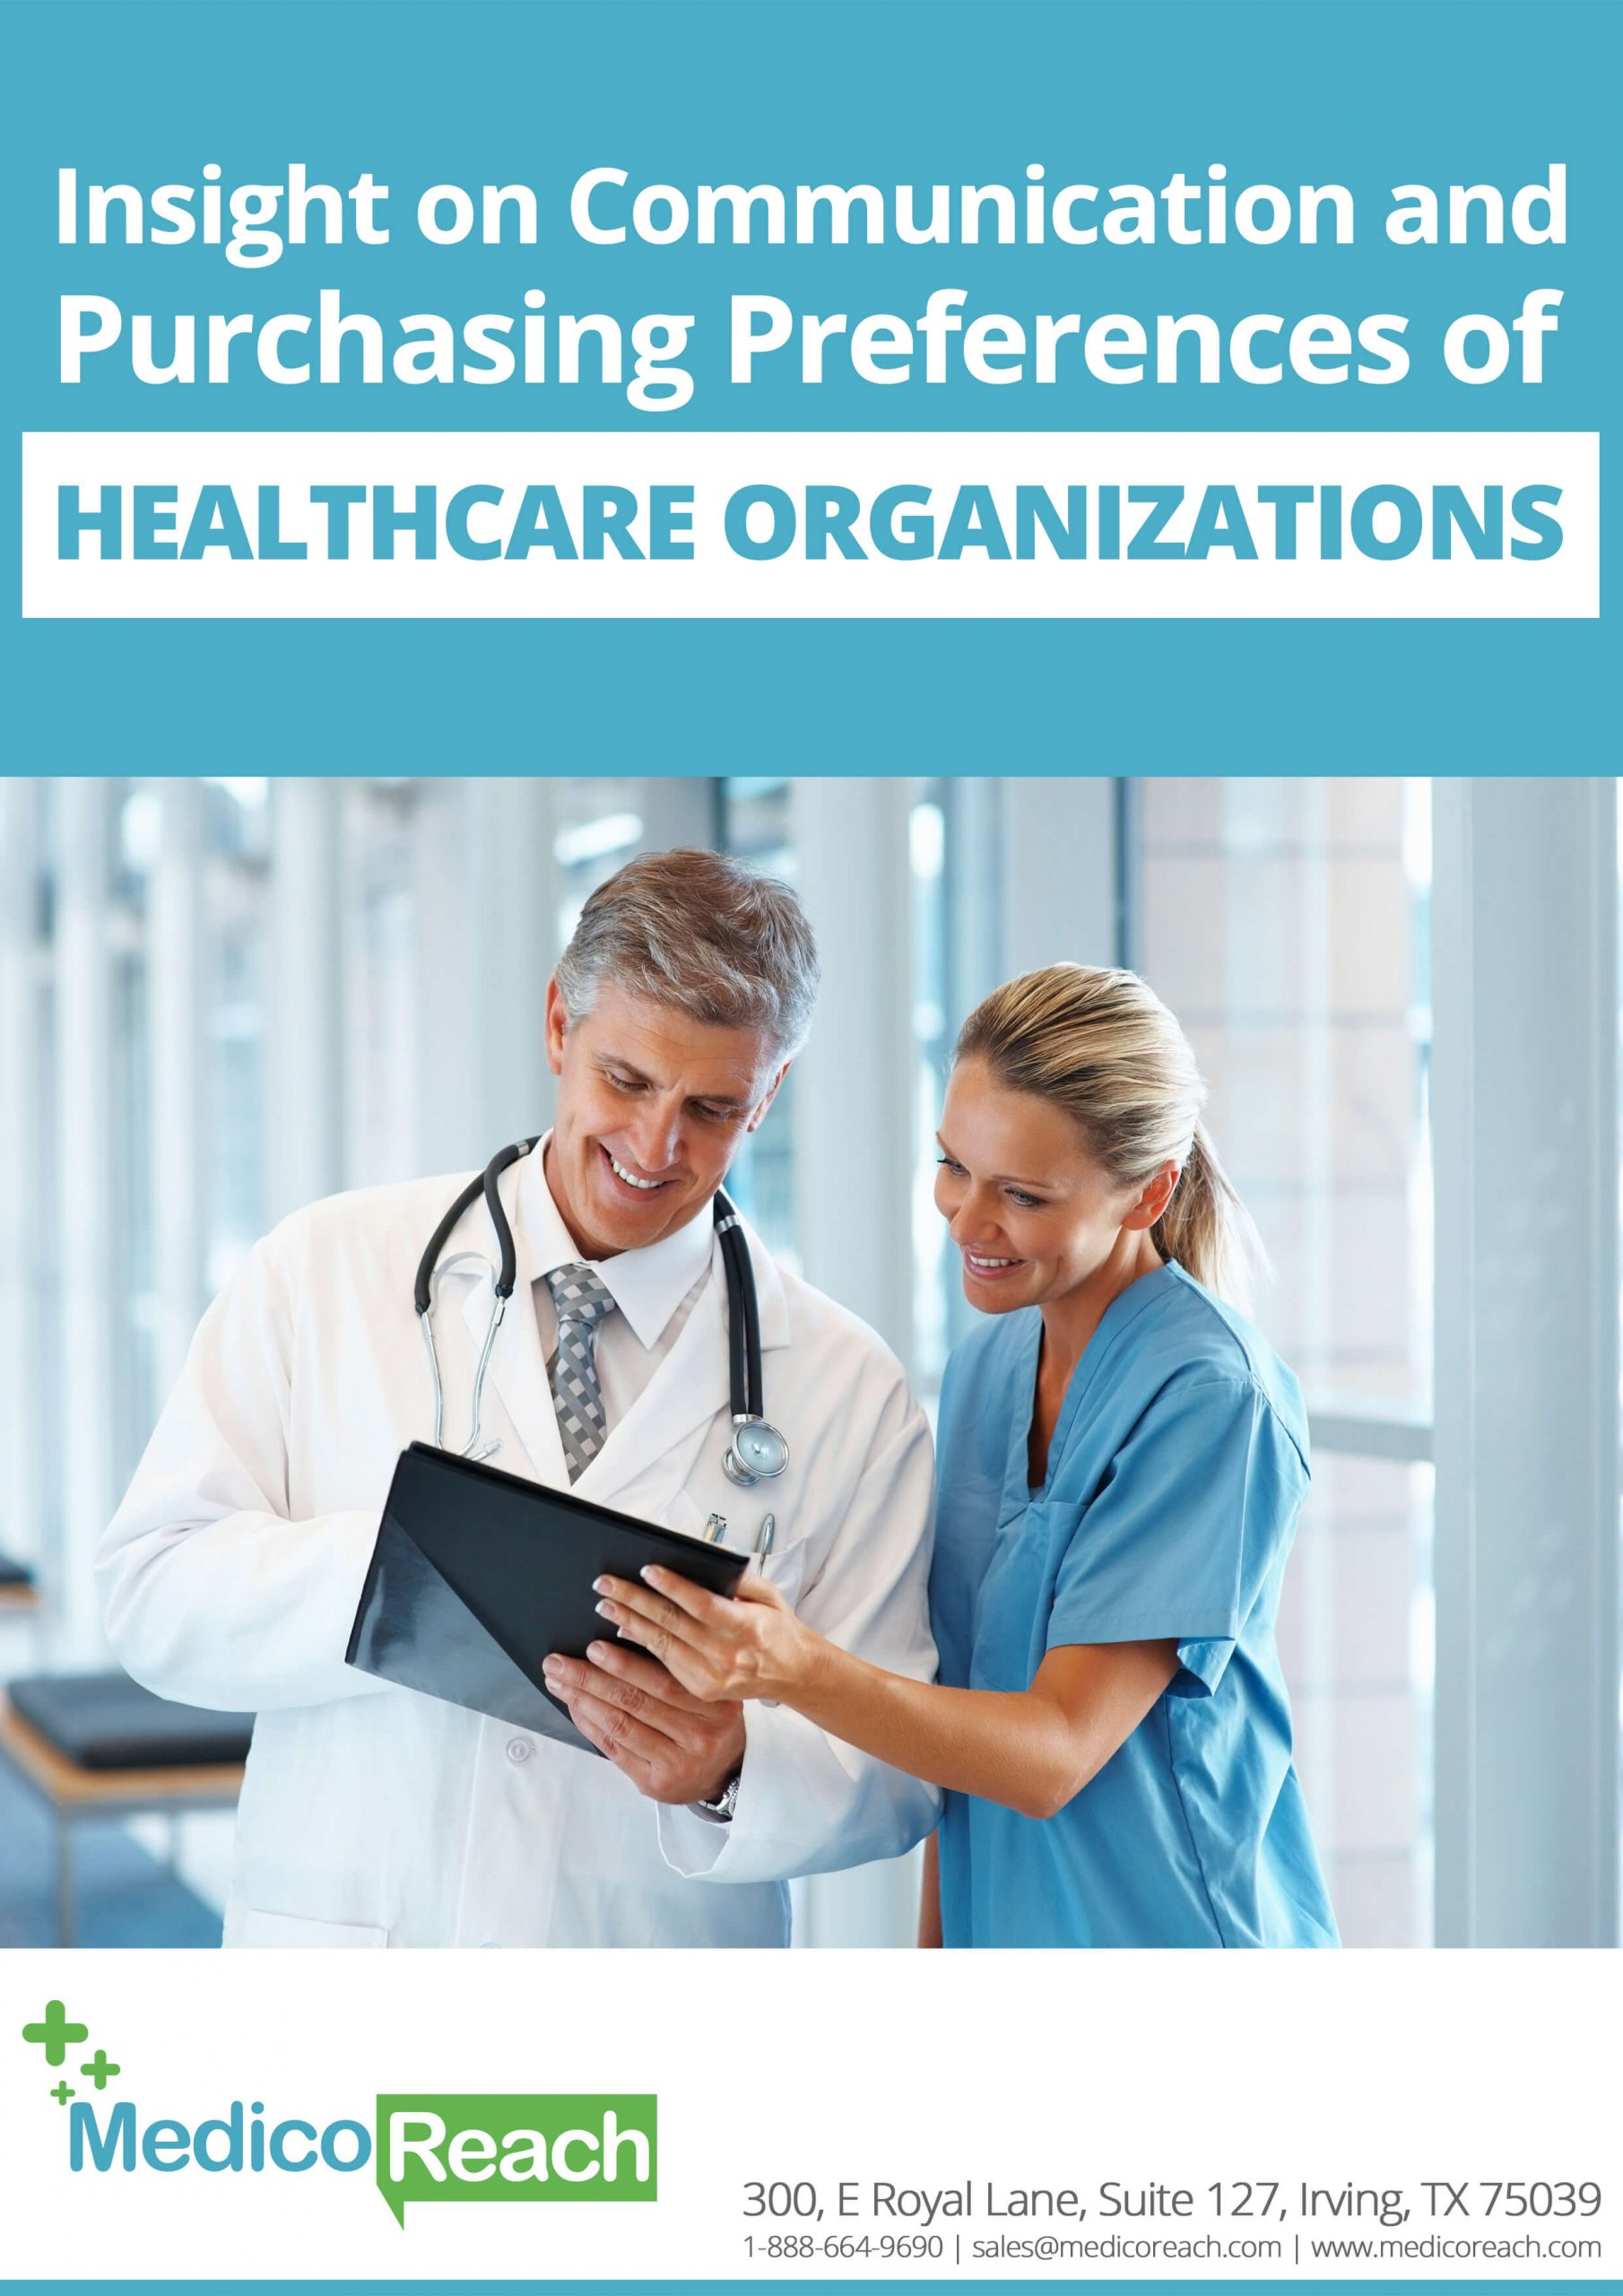 insight on communication and purchasing preferences of healthcare organizations - MedicoReach